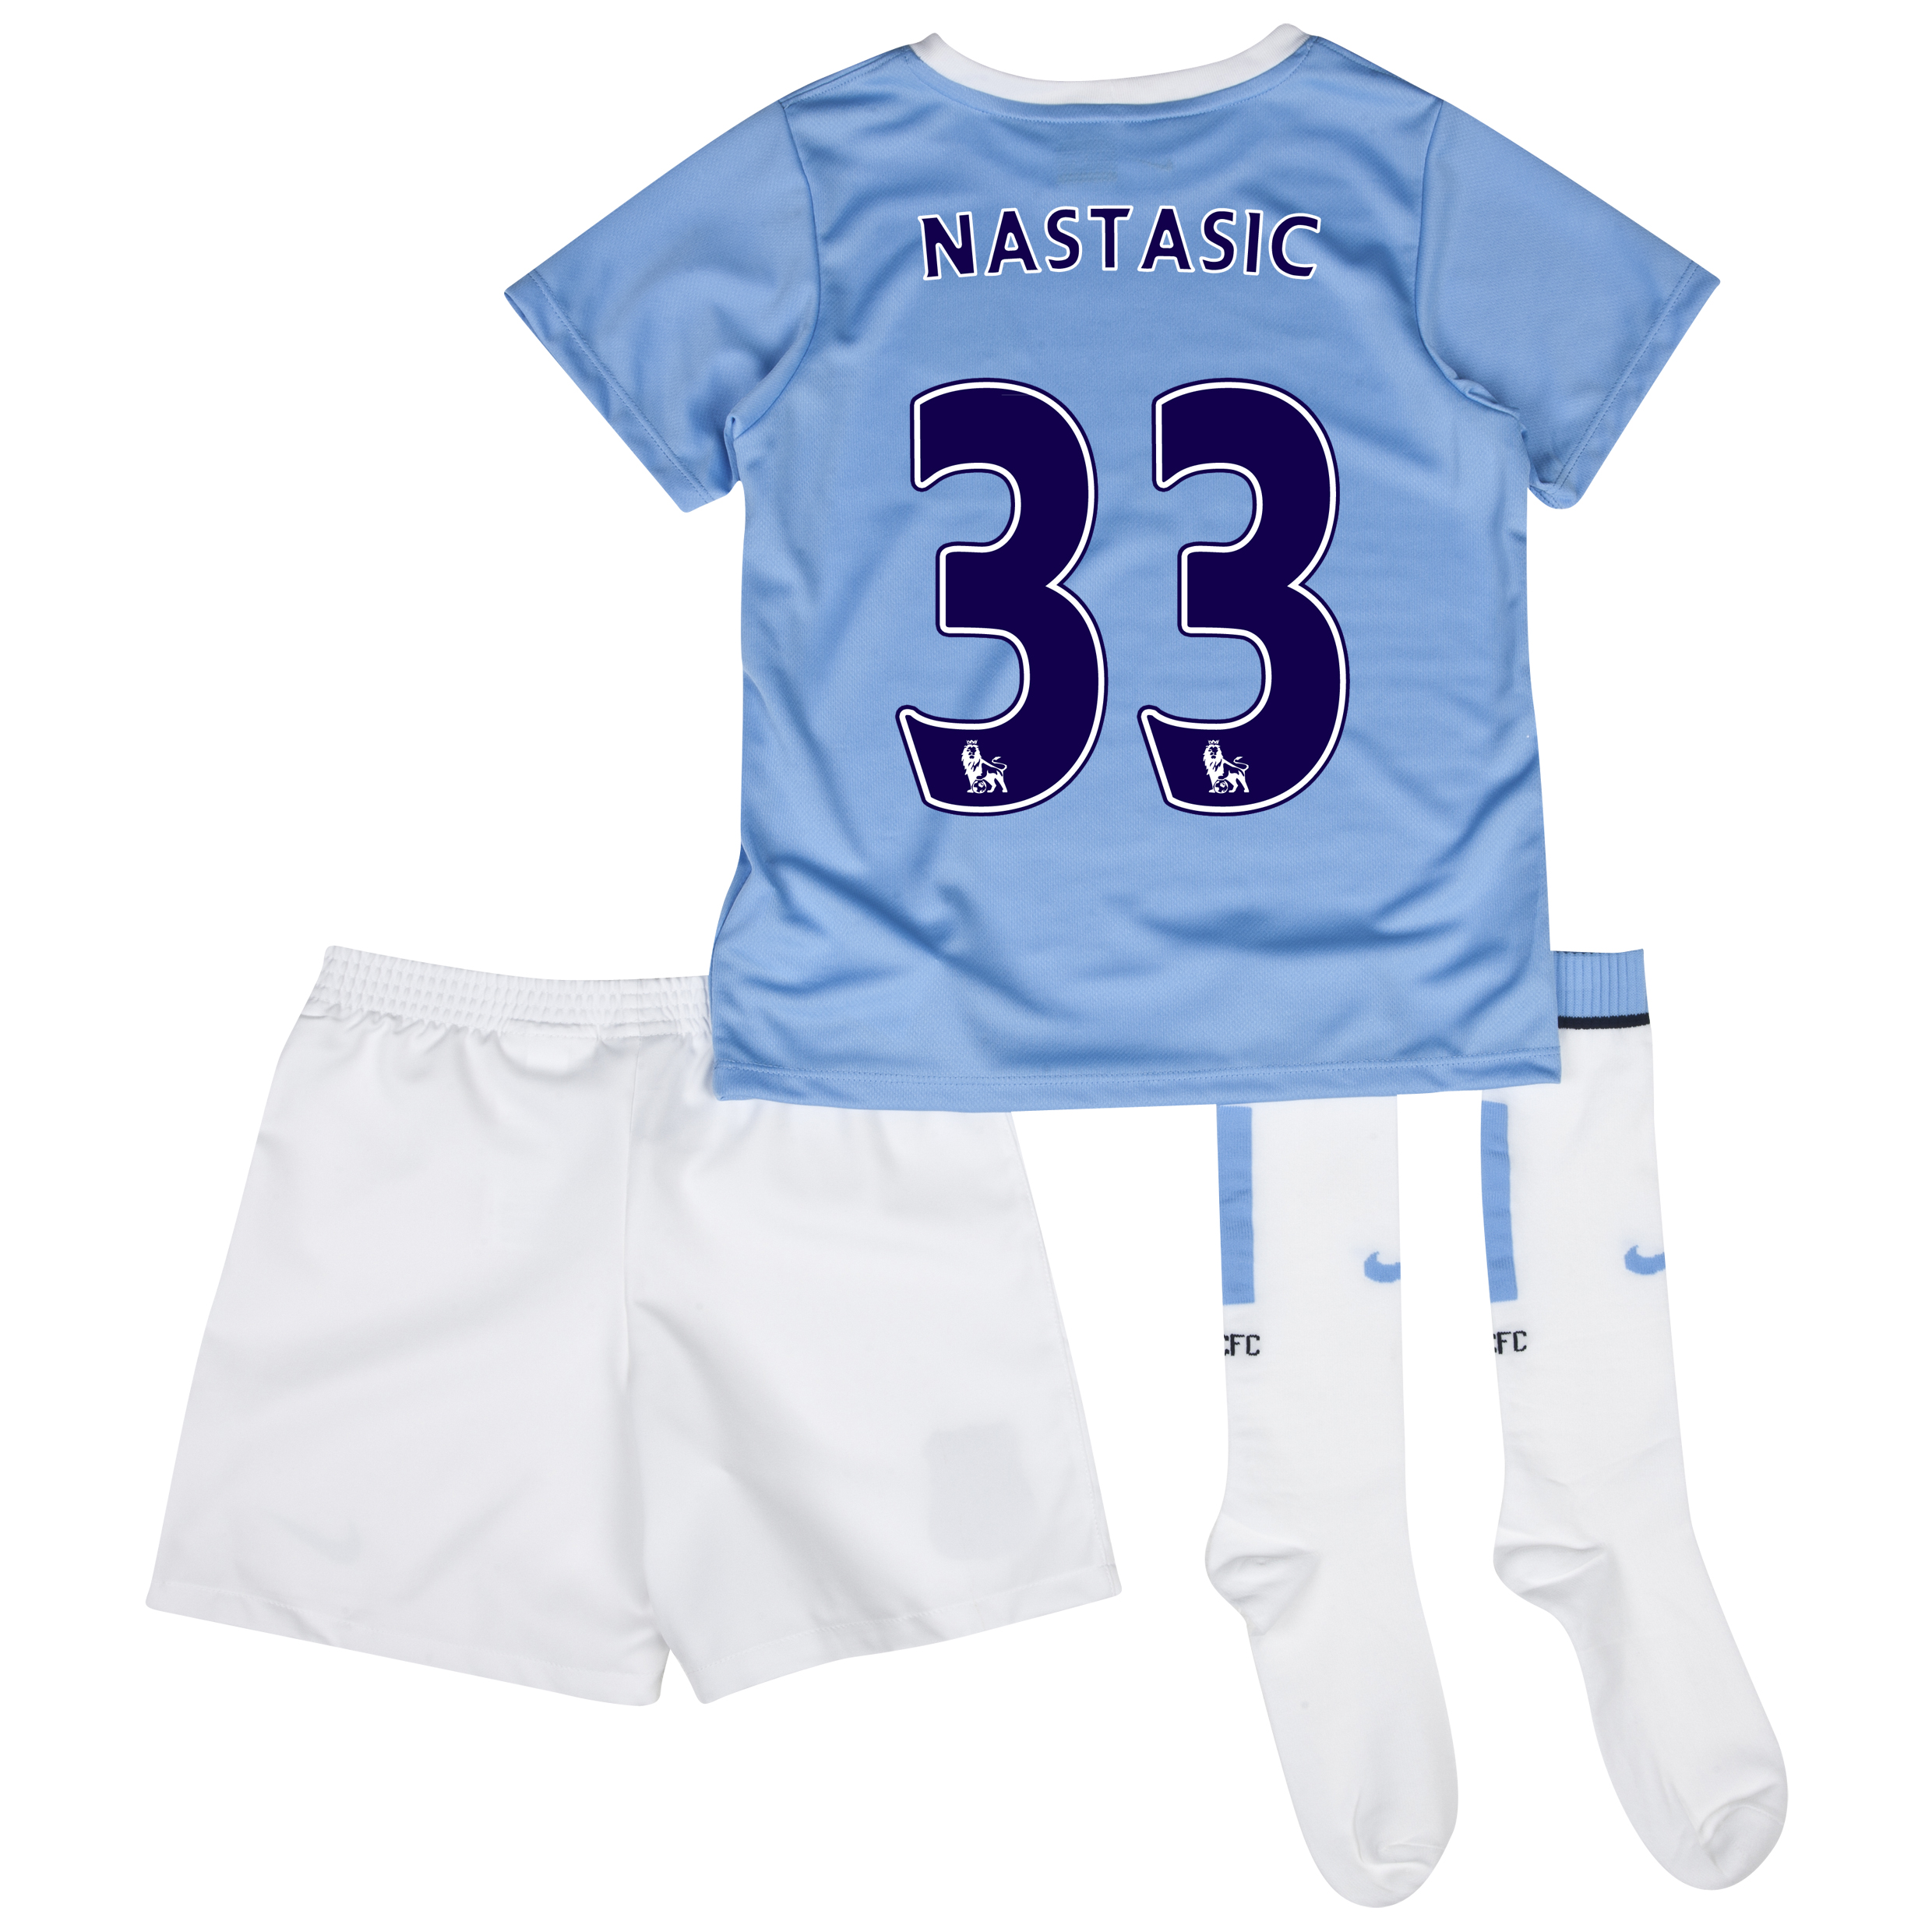 Manchester City Home Little Boys Kit 2013/14 with Nastasic 33 printing